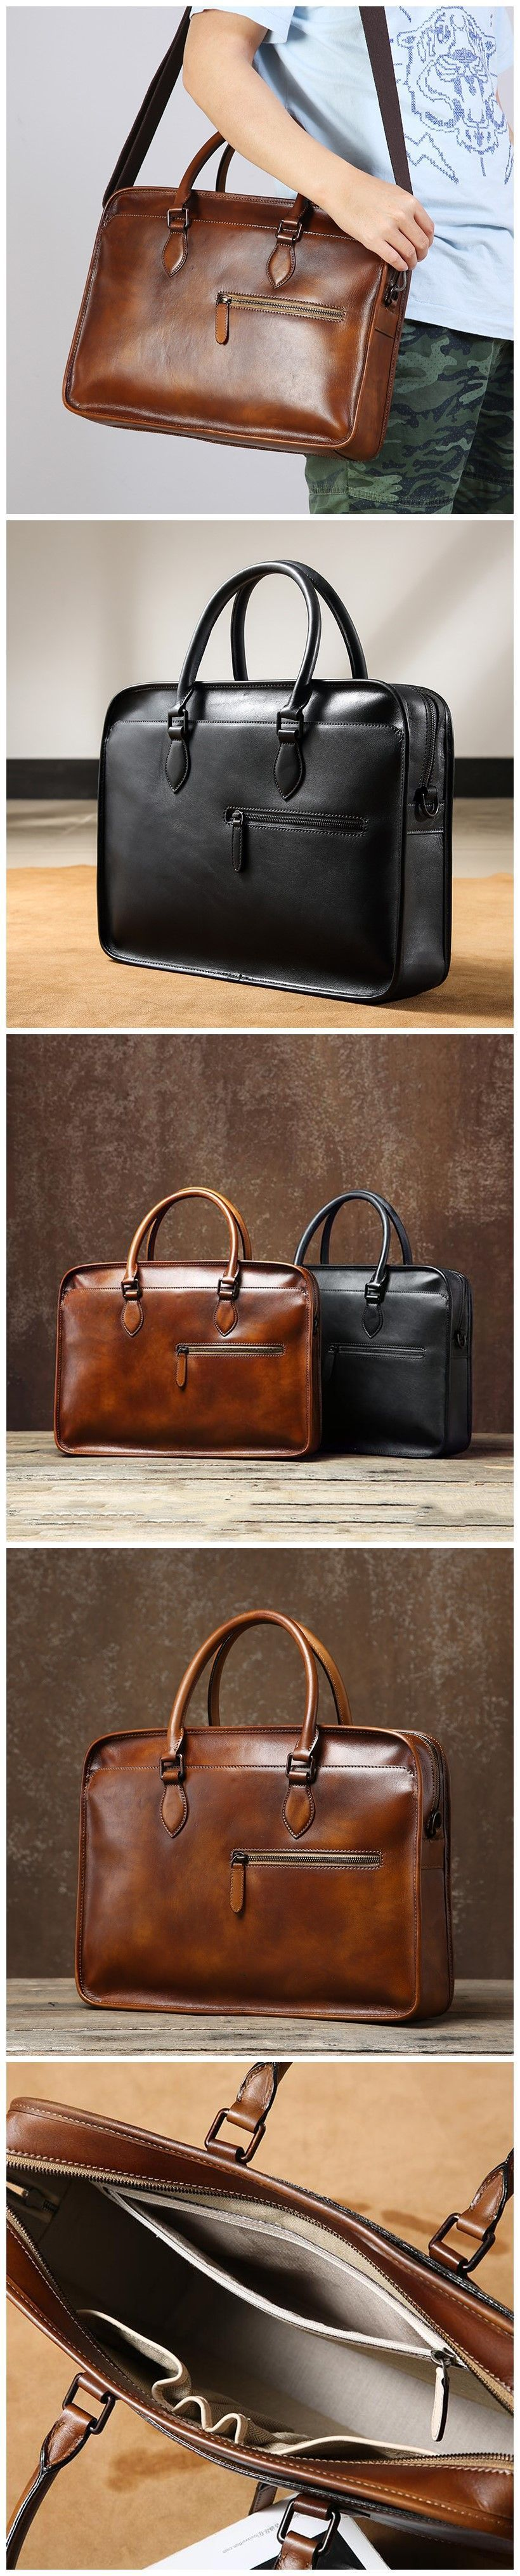 Retro Handmade Men Tote Bag Full Grain Leather Messenger Bag Shoulder Laptop Bag Retro Handmade Men Tote Bag Full Grain Leather Messenger Bag Shoulder Laptop Bag